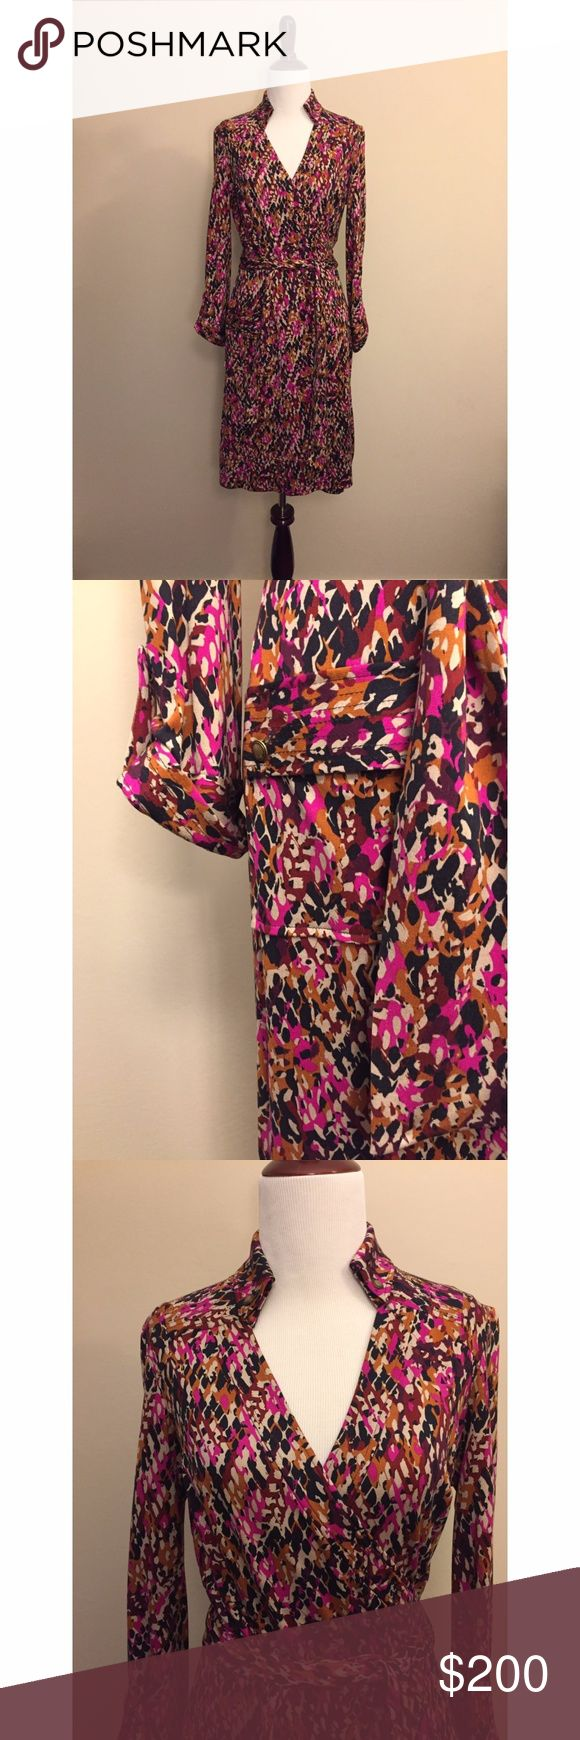 """Diane von Furstenberg Konya Wrap Dress Size 8 An iconic DVF style, this camouflage silk-jersey wrap dress features a waist tie and button-flap hip pockets. Buttons secure fold-over collar and button-tab detail gathers cuffs. Quilting at yoke and quilted banding at pockets and cuffs. 3/4 sleeves can be worn cuffed or long.  * 37"""" long, measured from center back. * Fabrication: Silk jersey. * 100% silk. * Dry clean. * Imported. Diane Von Furstenberg Dresses Midi"""